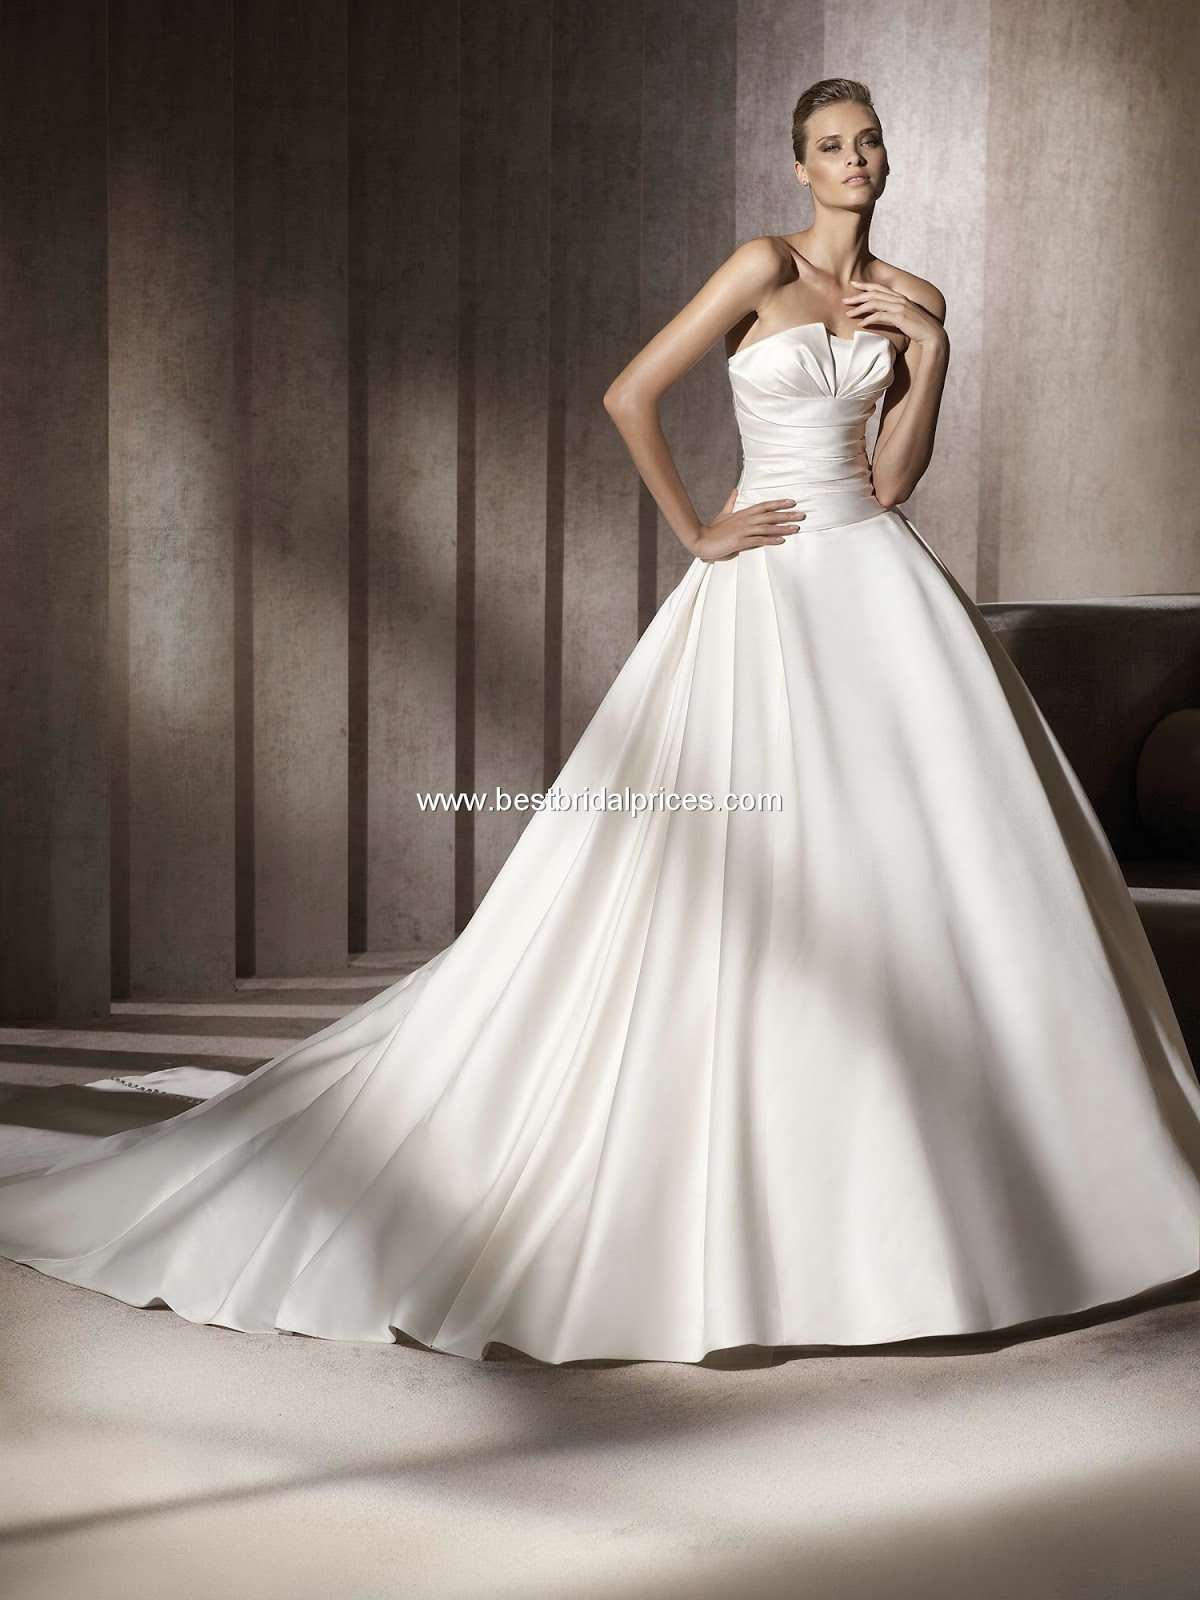 Egyptian Wedding Dresses 2012 The